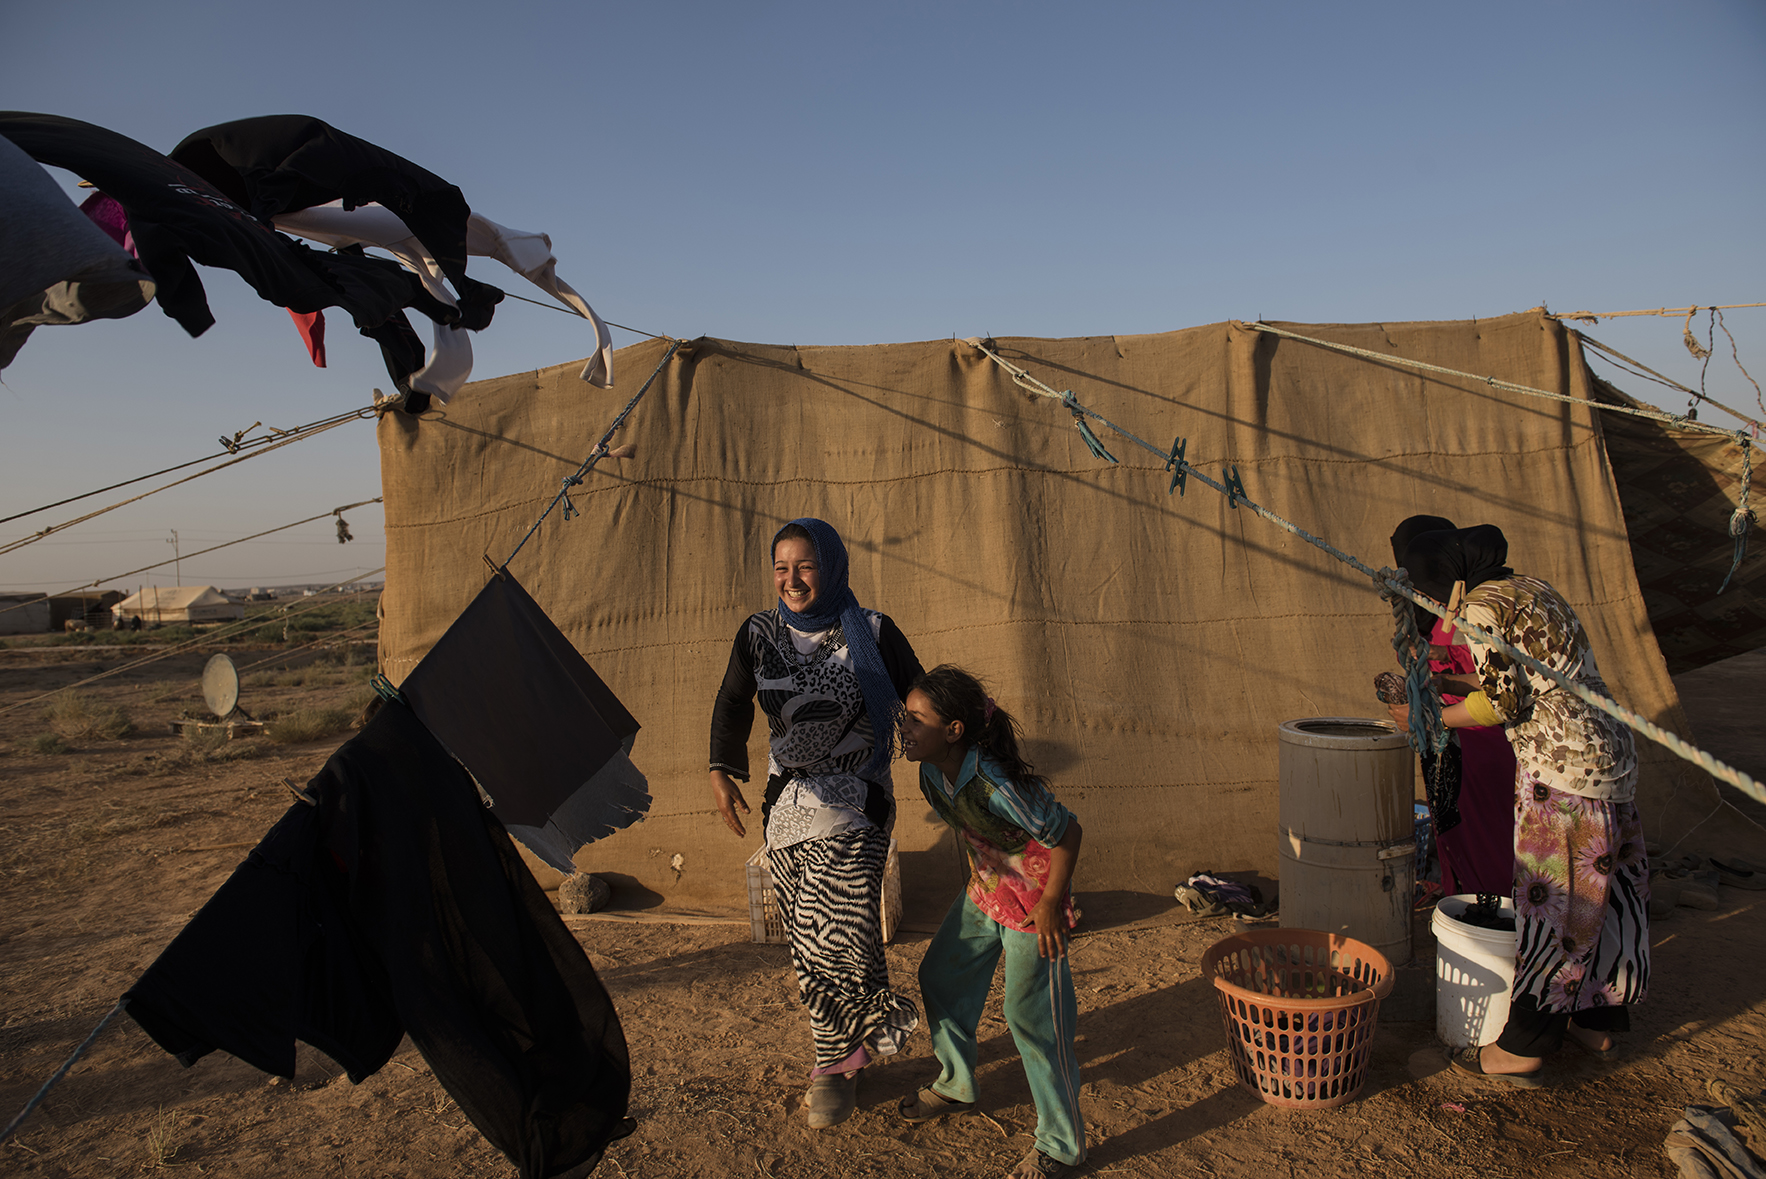 Jazia, 15, a Syrian refugee from Hama, laughs with her little sister as she washes clothes outside of her family's tent in a small camp near Zaatari camp in Jordan, August 26, 2014.  Jazia was married when she was fourteen, and divorced after seven months because her husband was physically abusive; she left him for good only a few days prior. Her mother explains that her daughter was too young to get married, but she didn't know any better, and she regrets having married her off.   While marriage under the age of eighteen was a common Syrian tradition before the start of the civil war, more and more Syrian girls are marrying at a younger age because of the insecurity of the war,  because many families feel the girls in their family may be sexually harassed if they are not under the care of a husband, and because of prospect of alleviating the financial burden of one more mouth to feed.